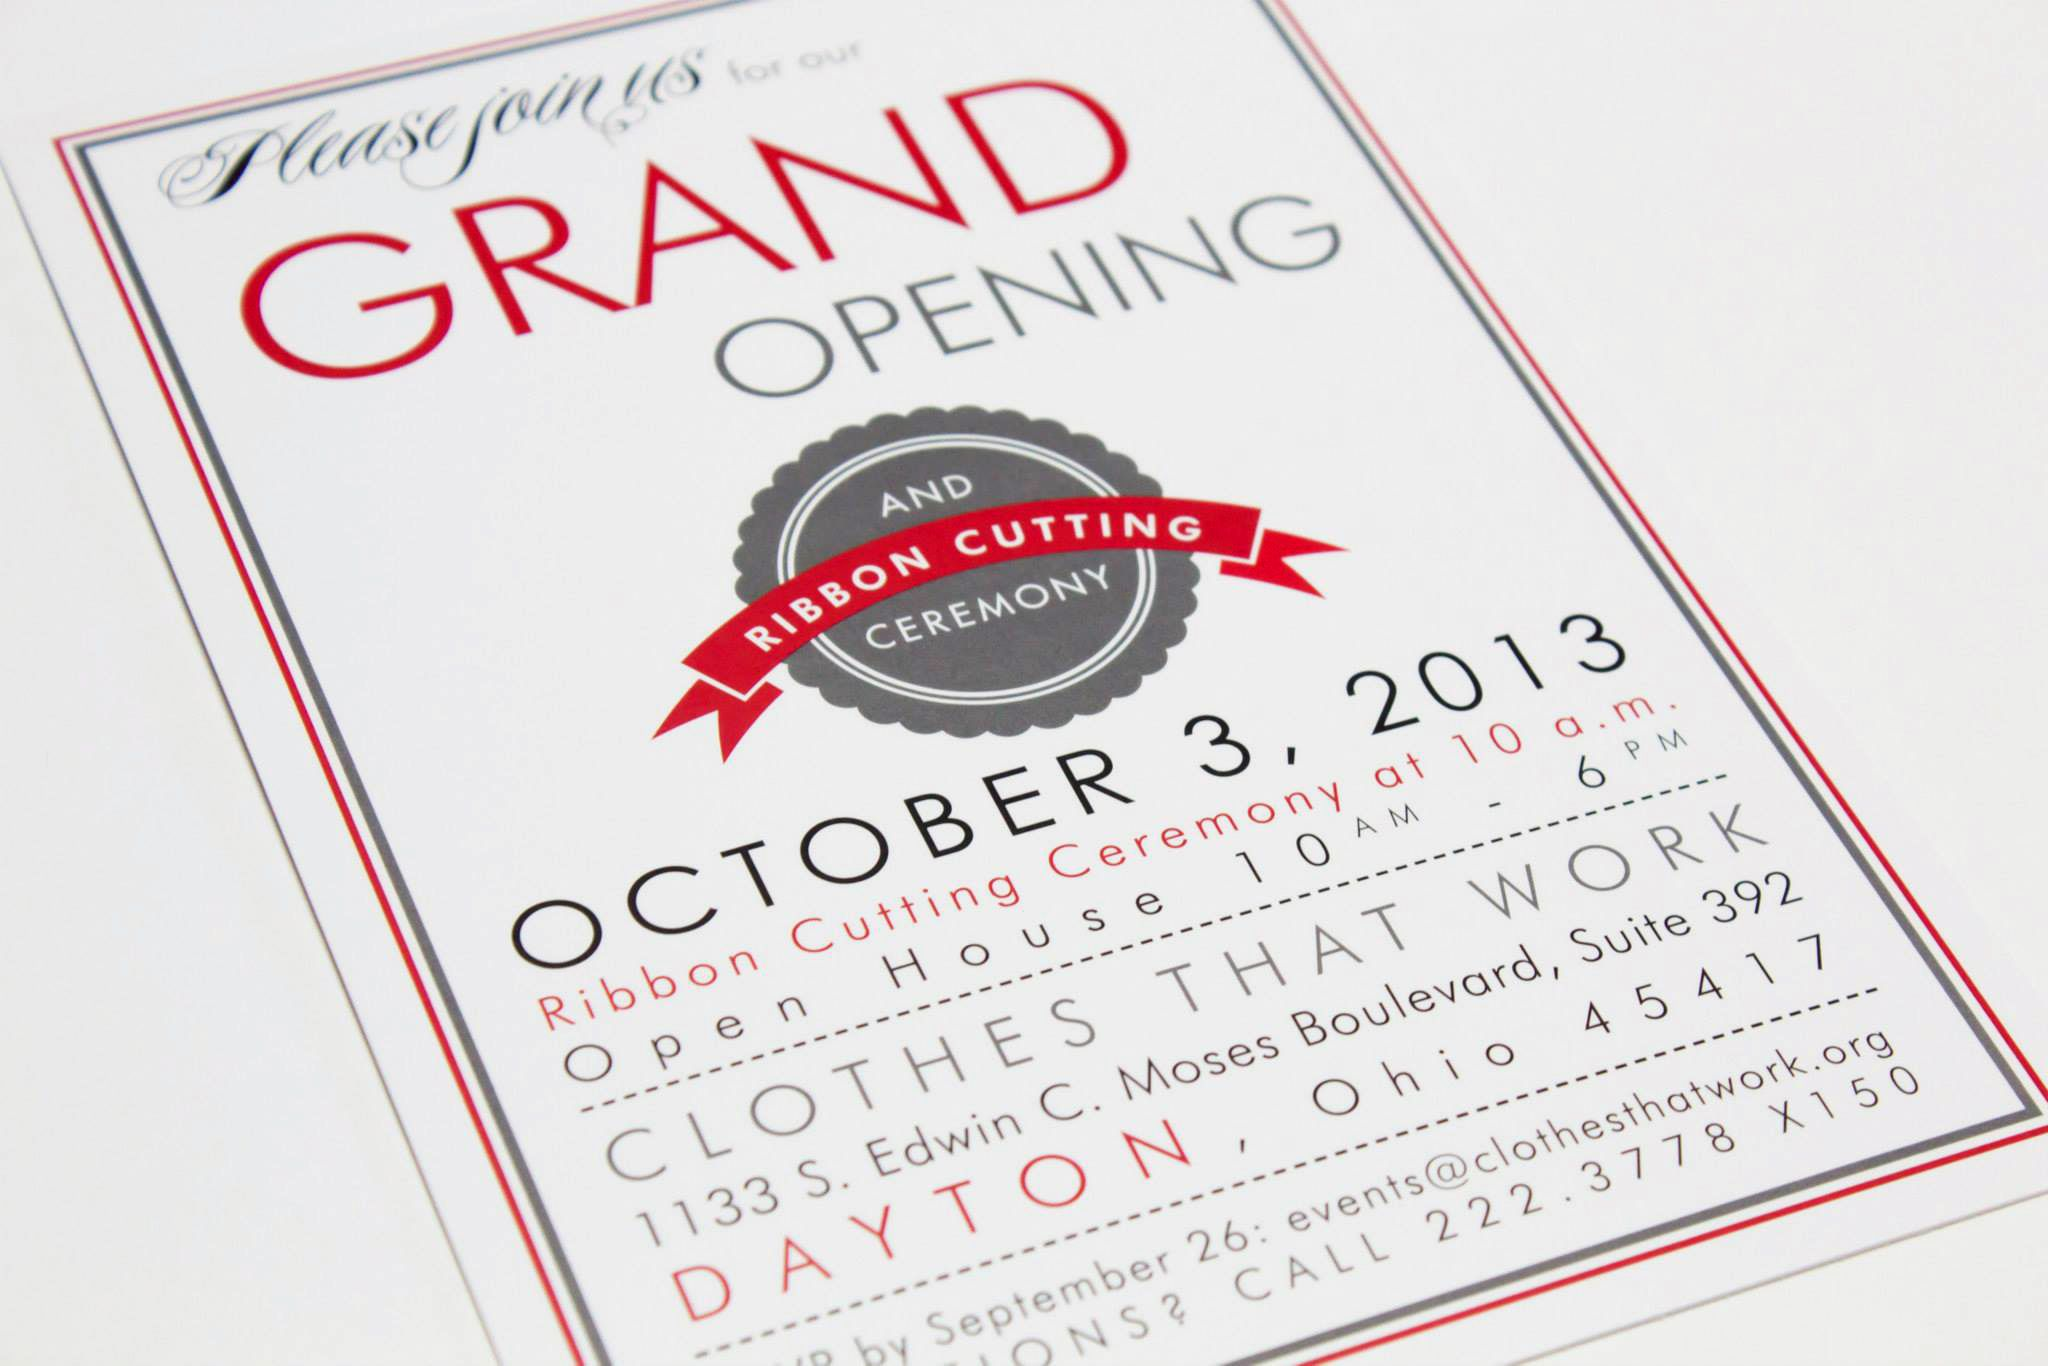 Clothes That Work boutique Grand Opening invitation | Grand opening  invitations, Grand opening, Invitation wording